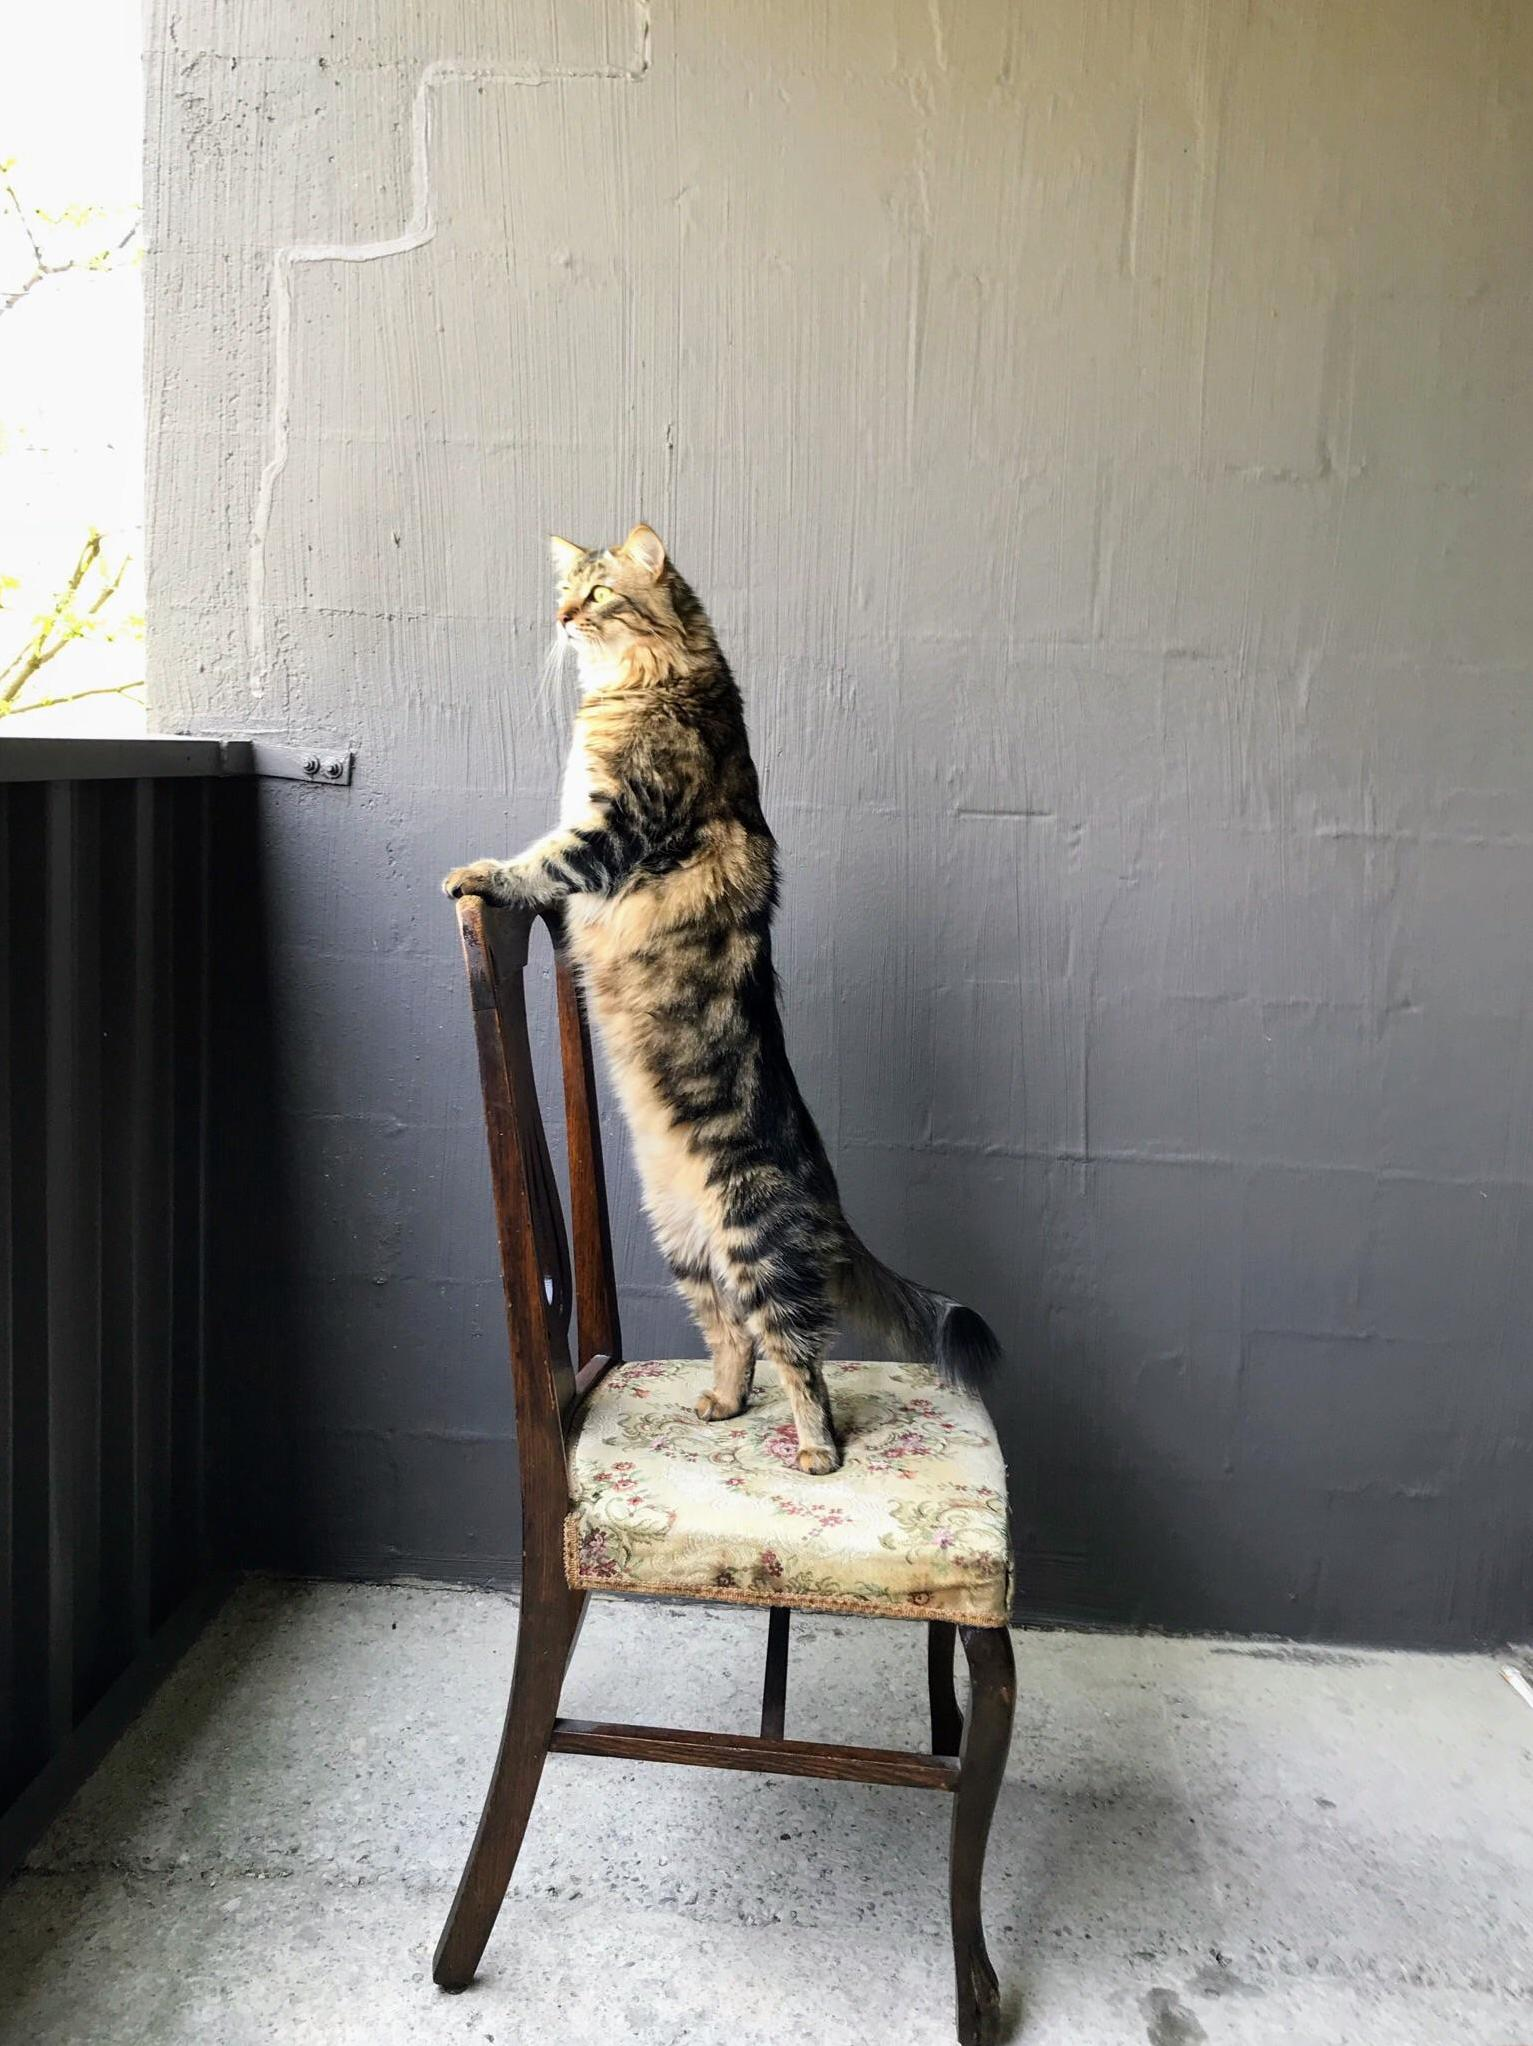 Our majestic floof surveying his kingdom